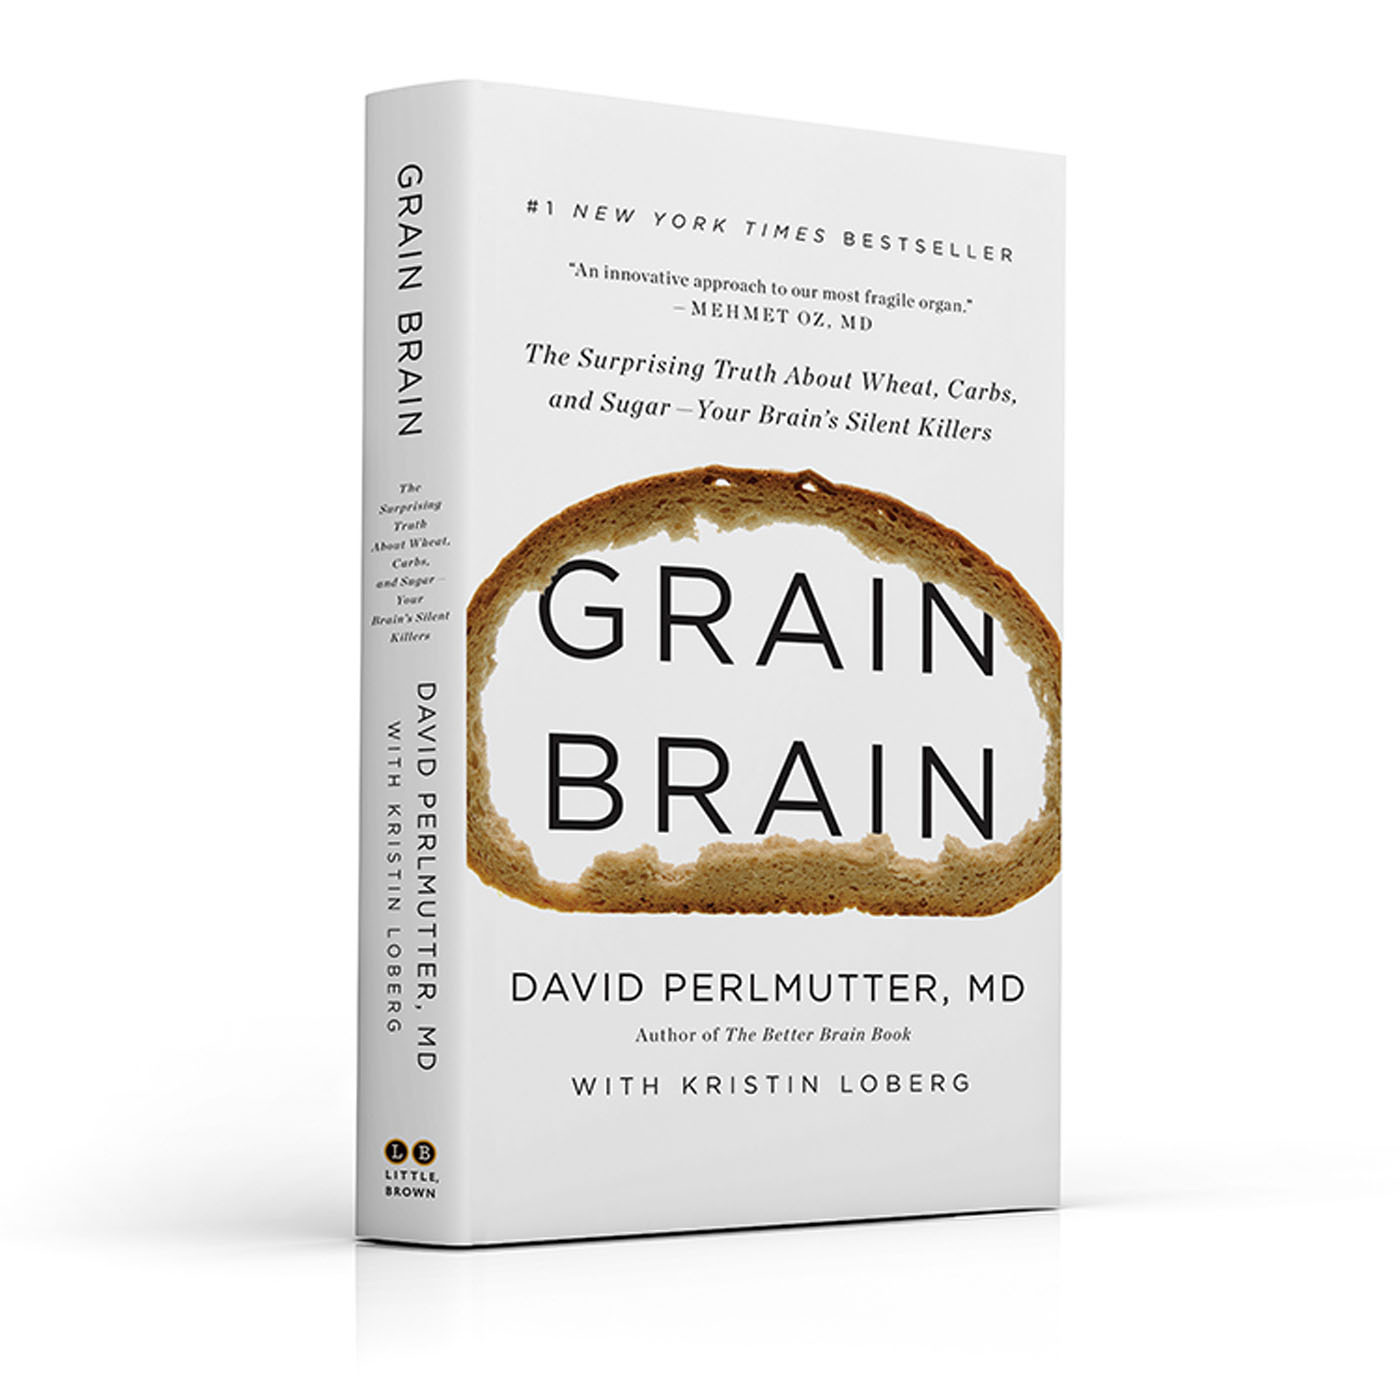 Dr. David Perlmutter's GRAIN BRAIN Hits #1 New York Times Bestseller